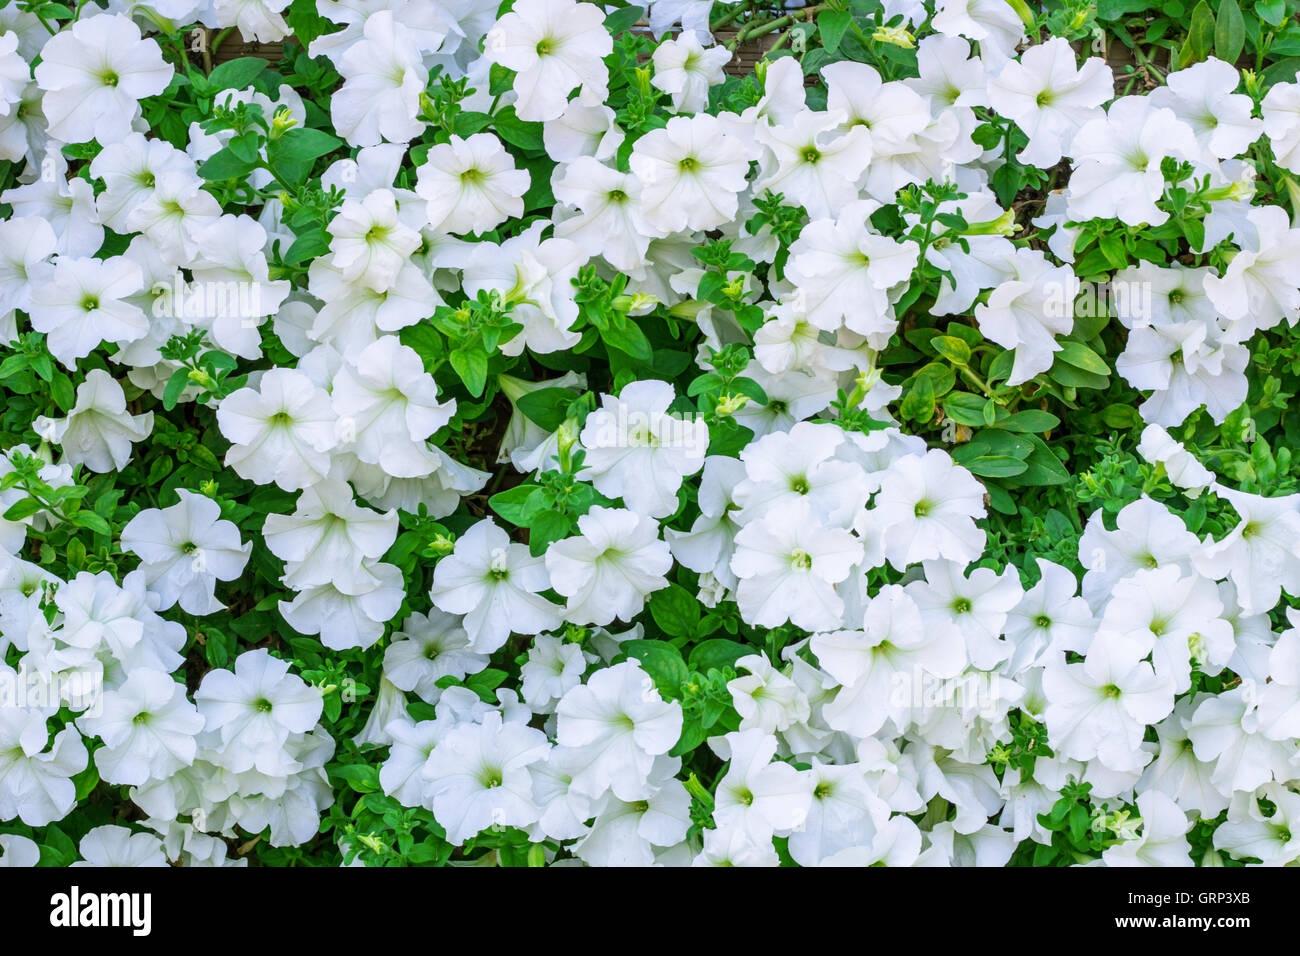 Floral background of copious quantities of blooming white Petunia flowers Stock Photo